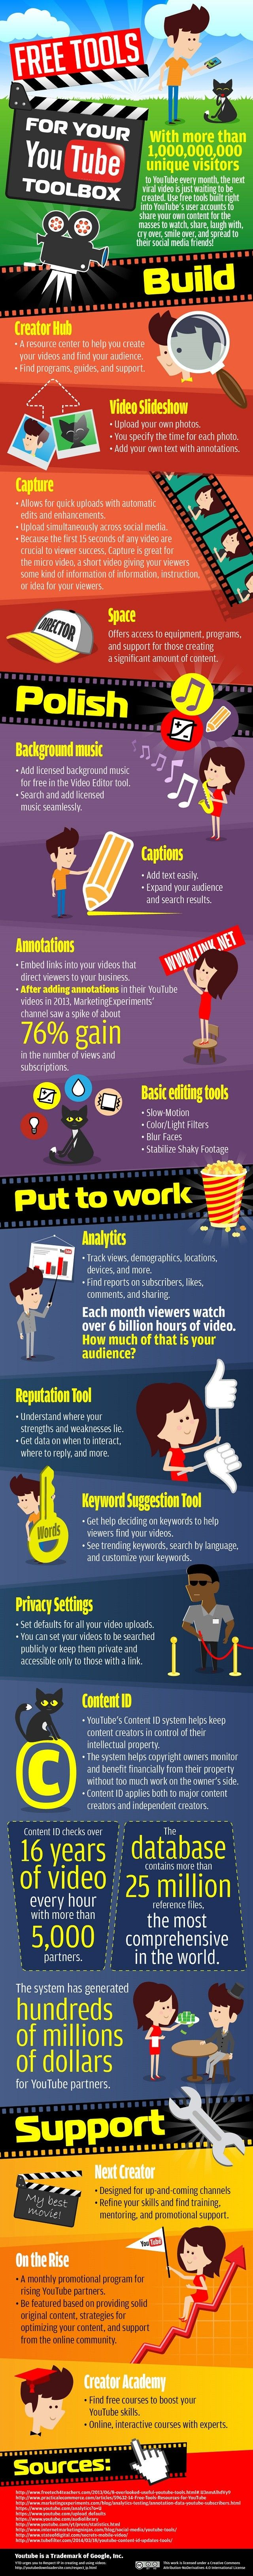 An overview of some useful, yet often overlooked, free YouTube tools. Free and great for educators.